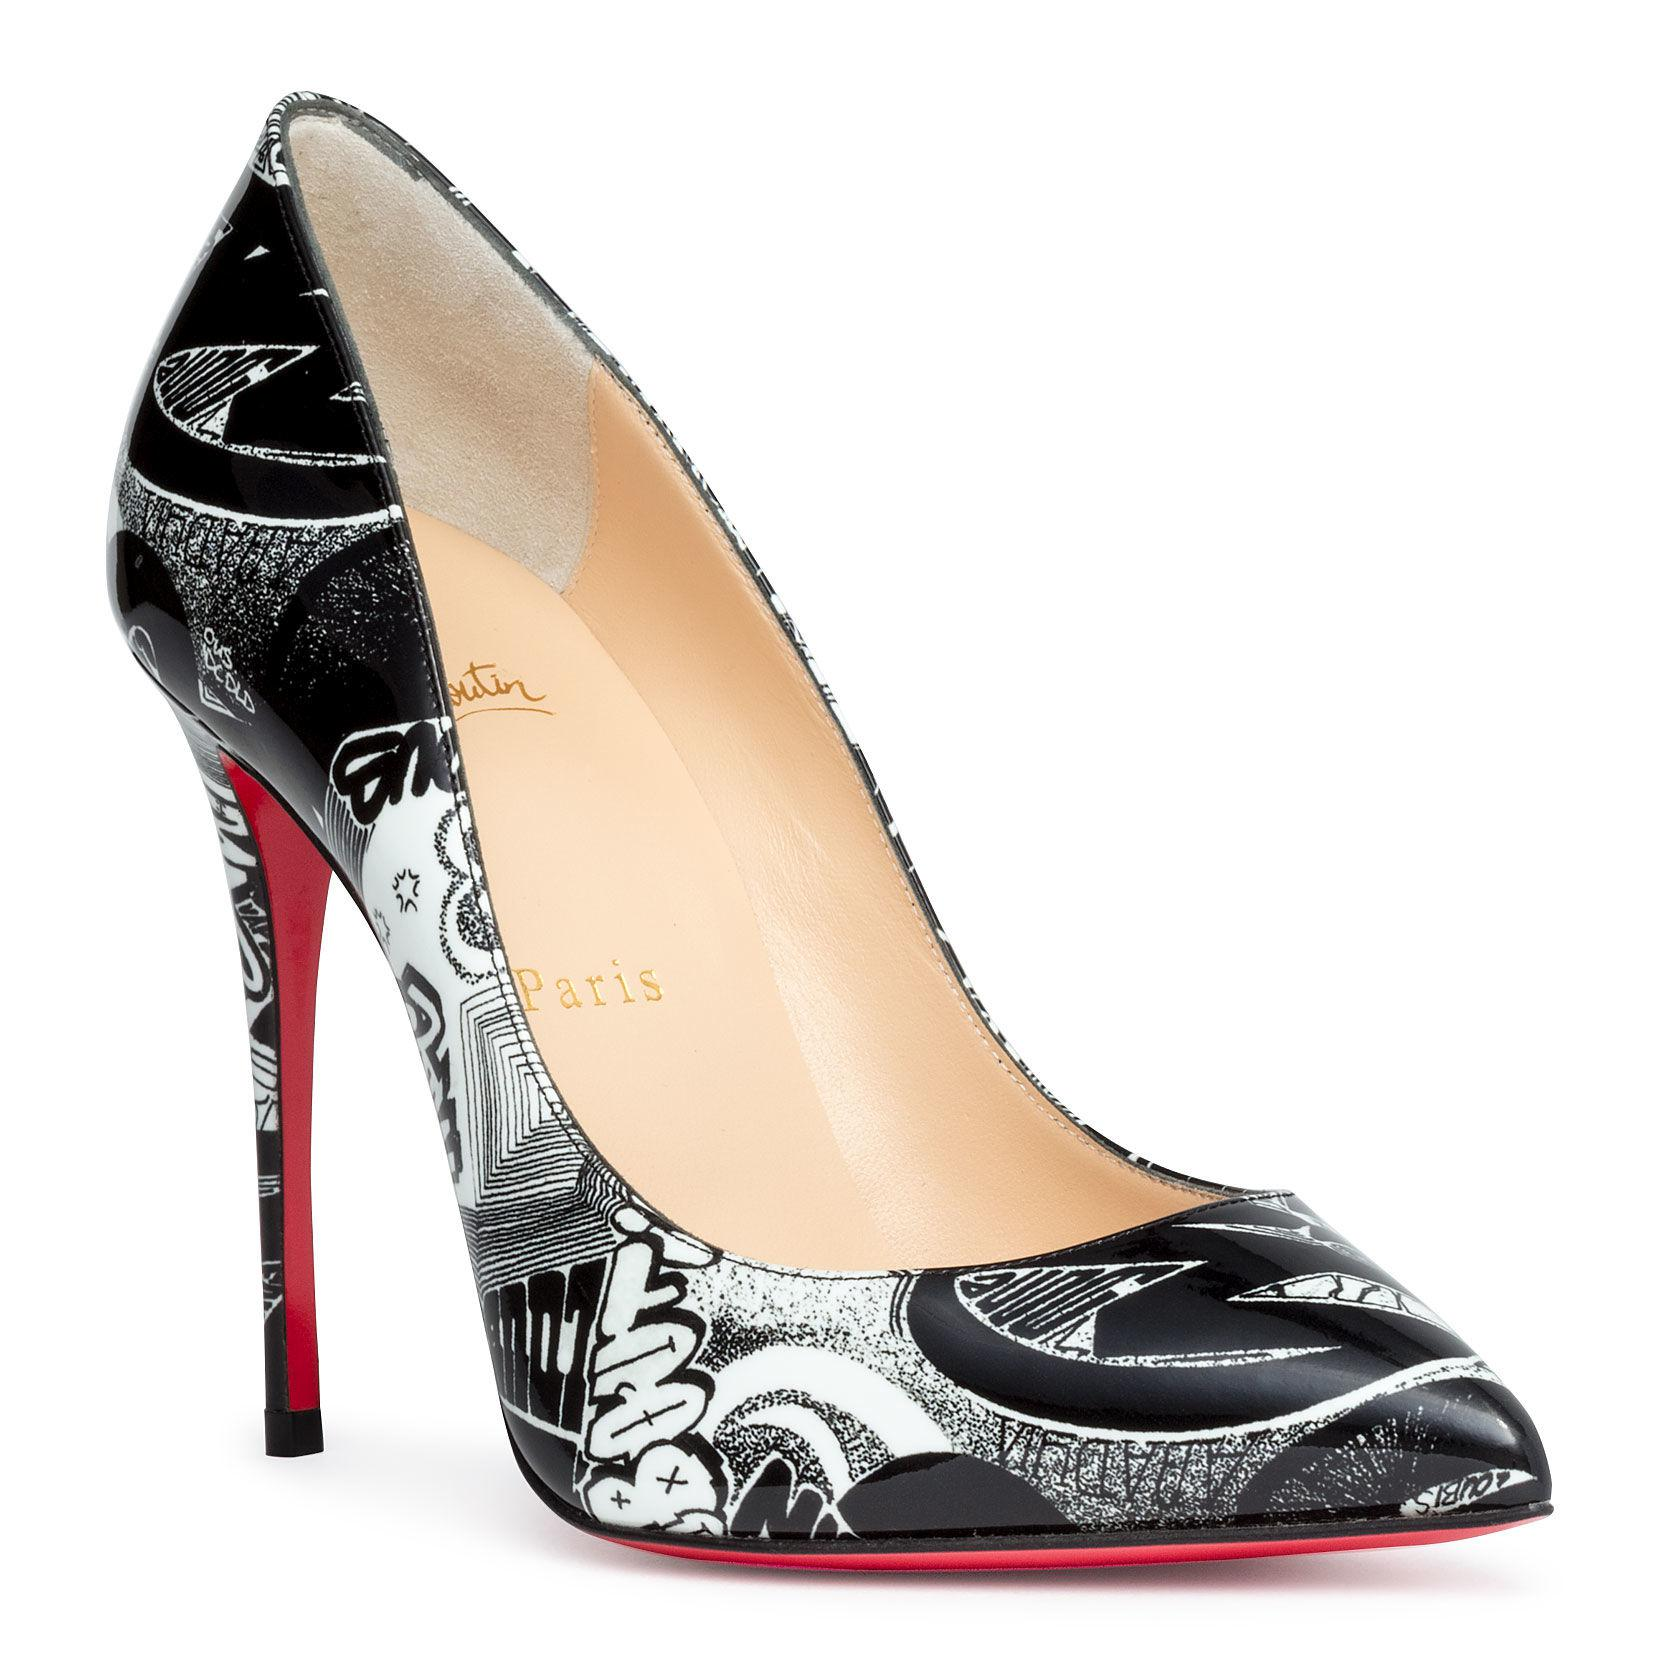 5e8913d3e75 Christian Louboutin. Women s Black Pigalle Folies 100 Printed Leather Pumps